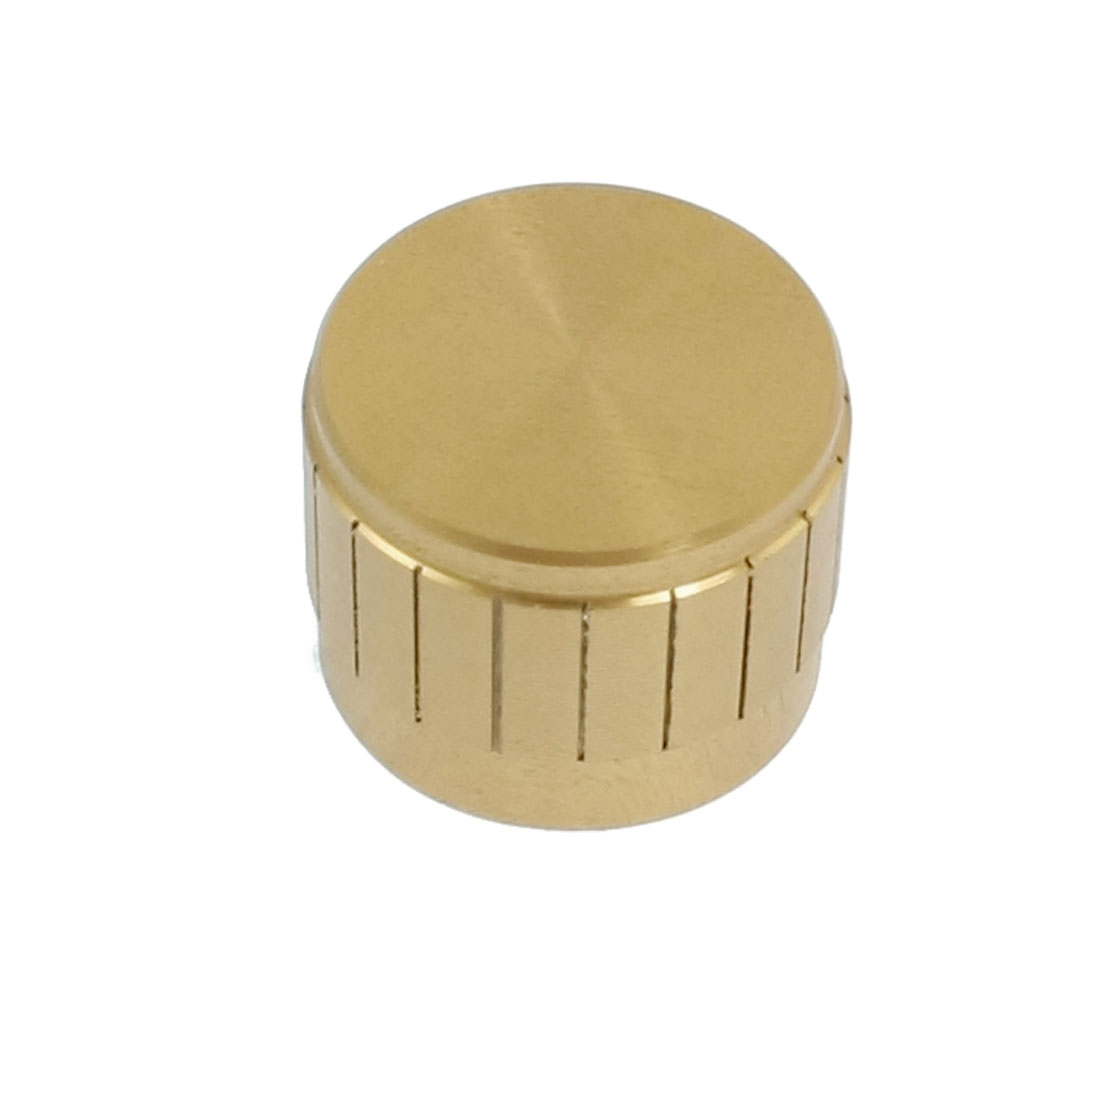 21mm x 17mm Potentiometer Control Volume Rotary Knob Cap Gold Tone